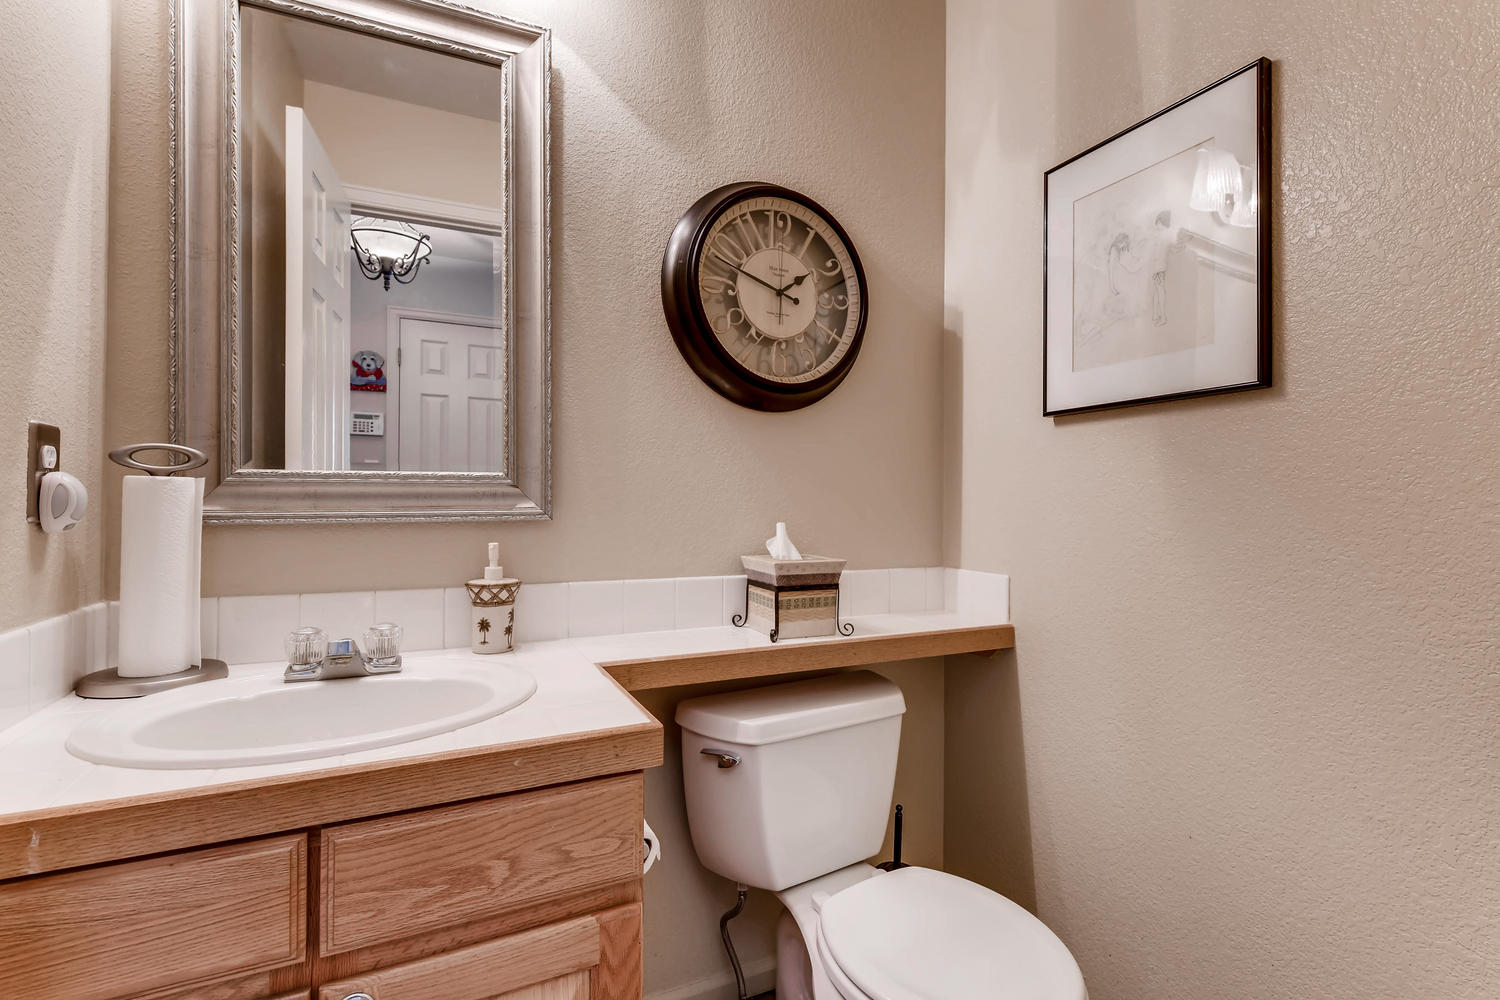 NEW LISTING: 1803 S Tamarac St Denver CO Main Level Powder Room